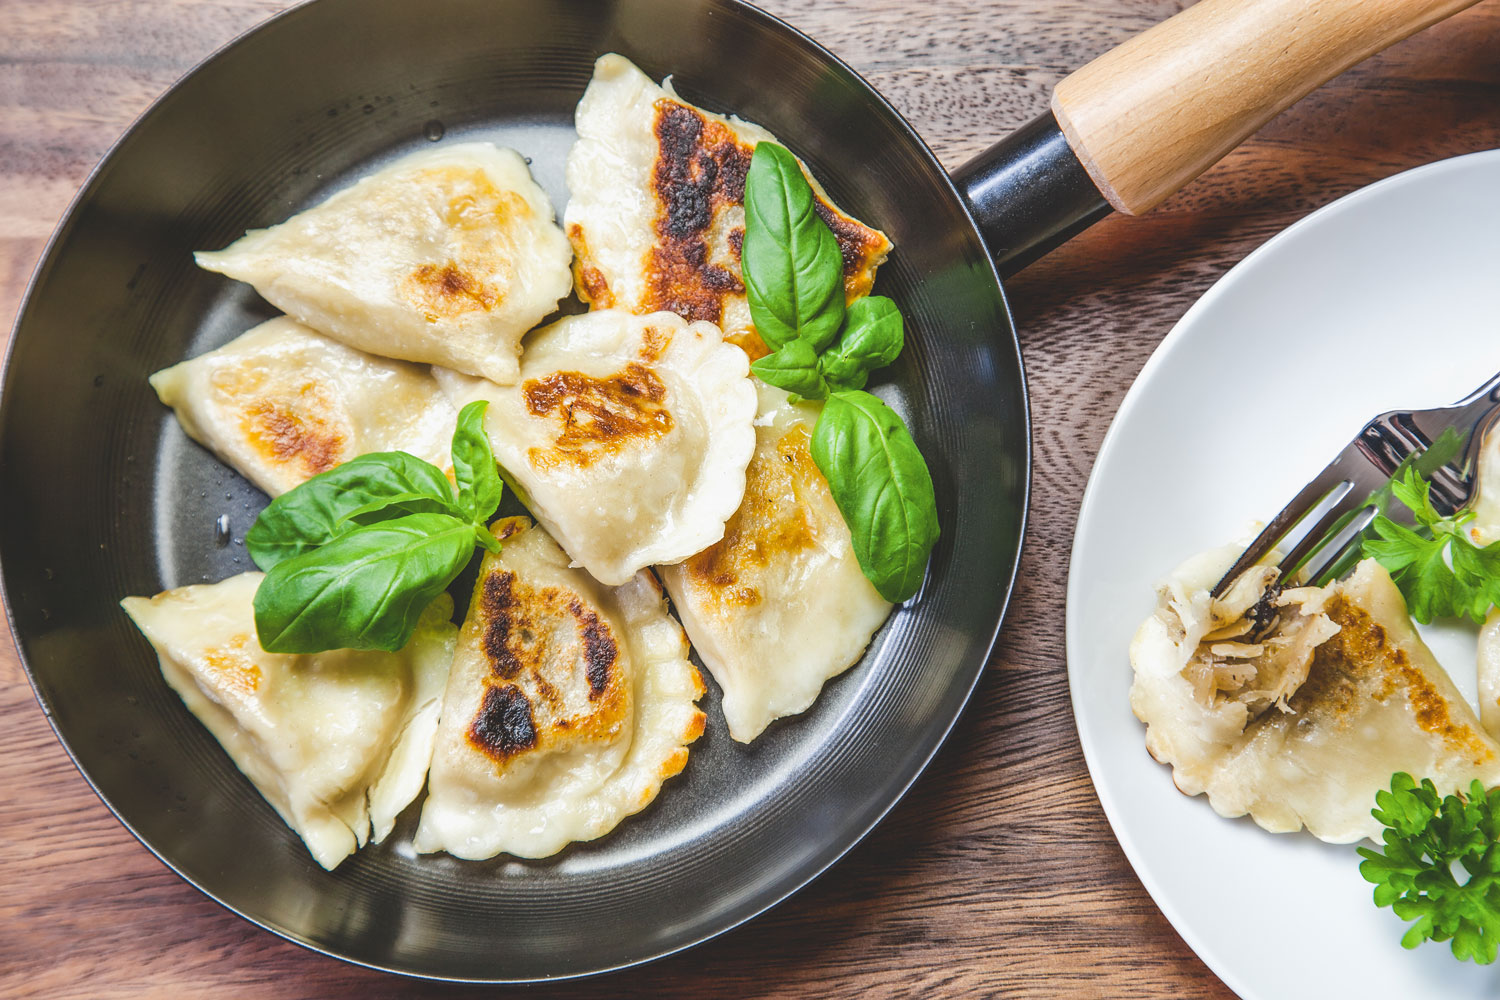 A pan filled with fried pierogies garnished with basil.